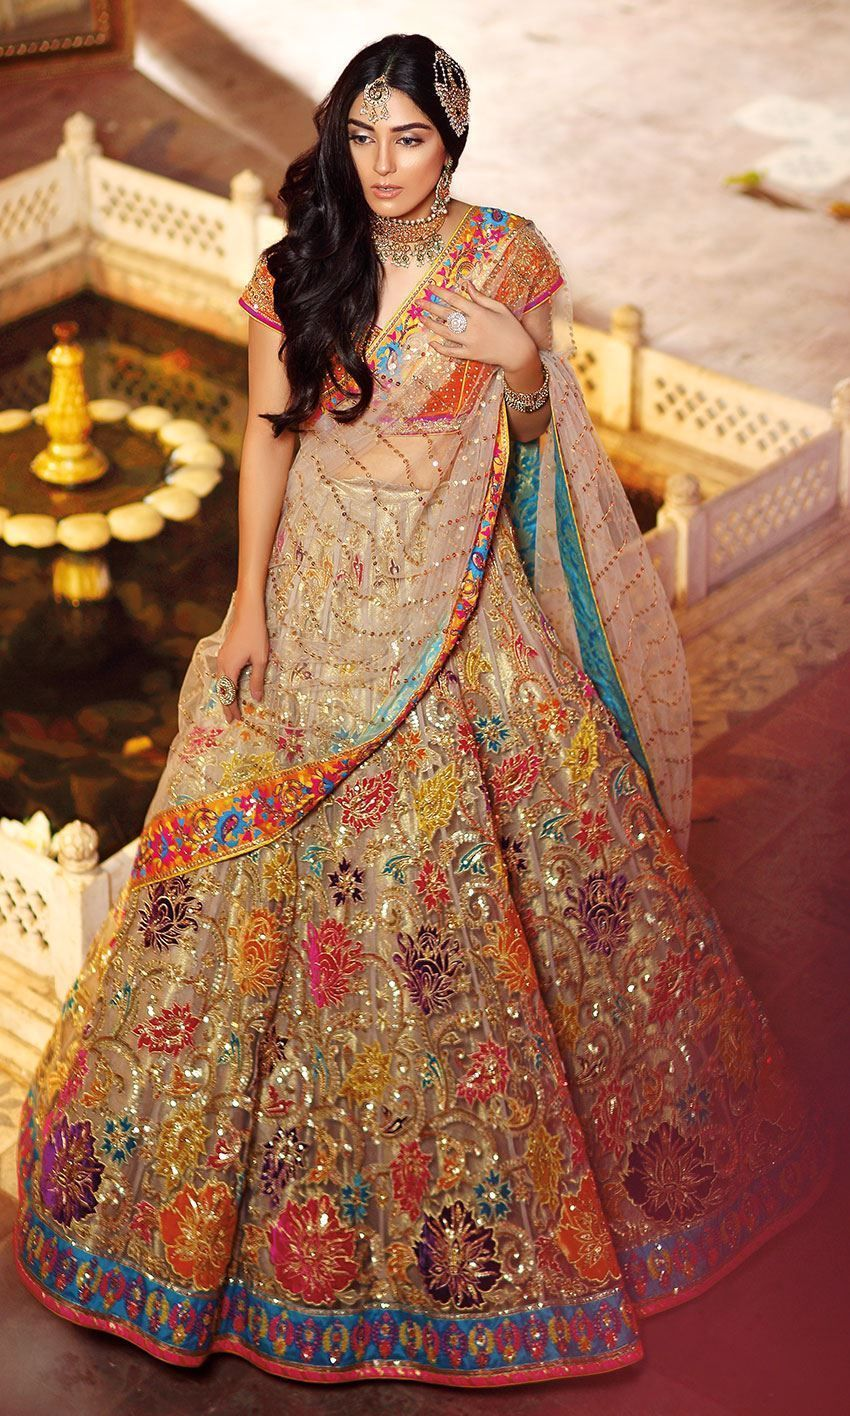 Fawn Color Wedding Lehenga With Multicolor Embroidery Bridal Dress Design Pakistani Bridal Dresses Bridal Lehenga Collection